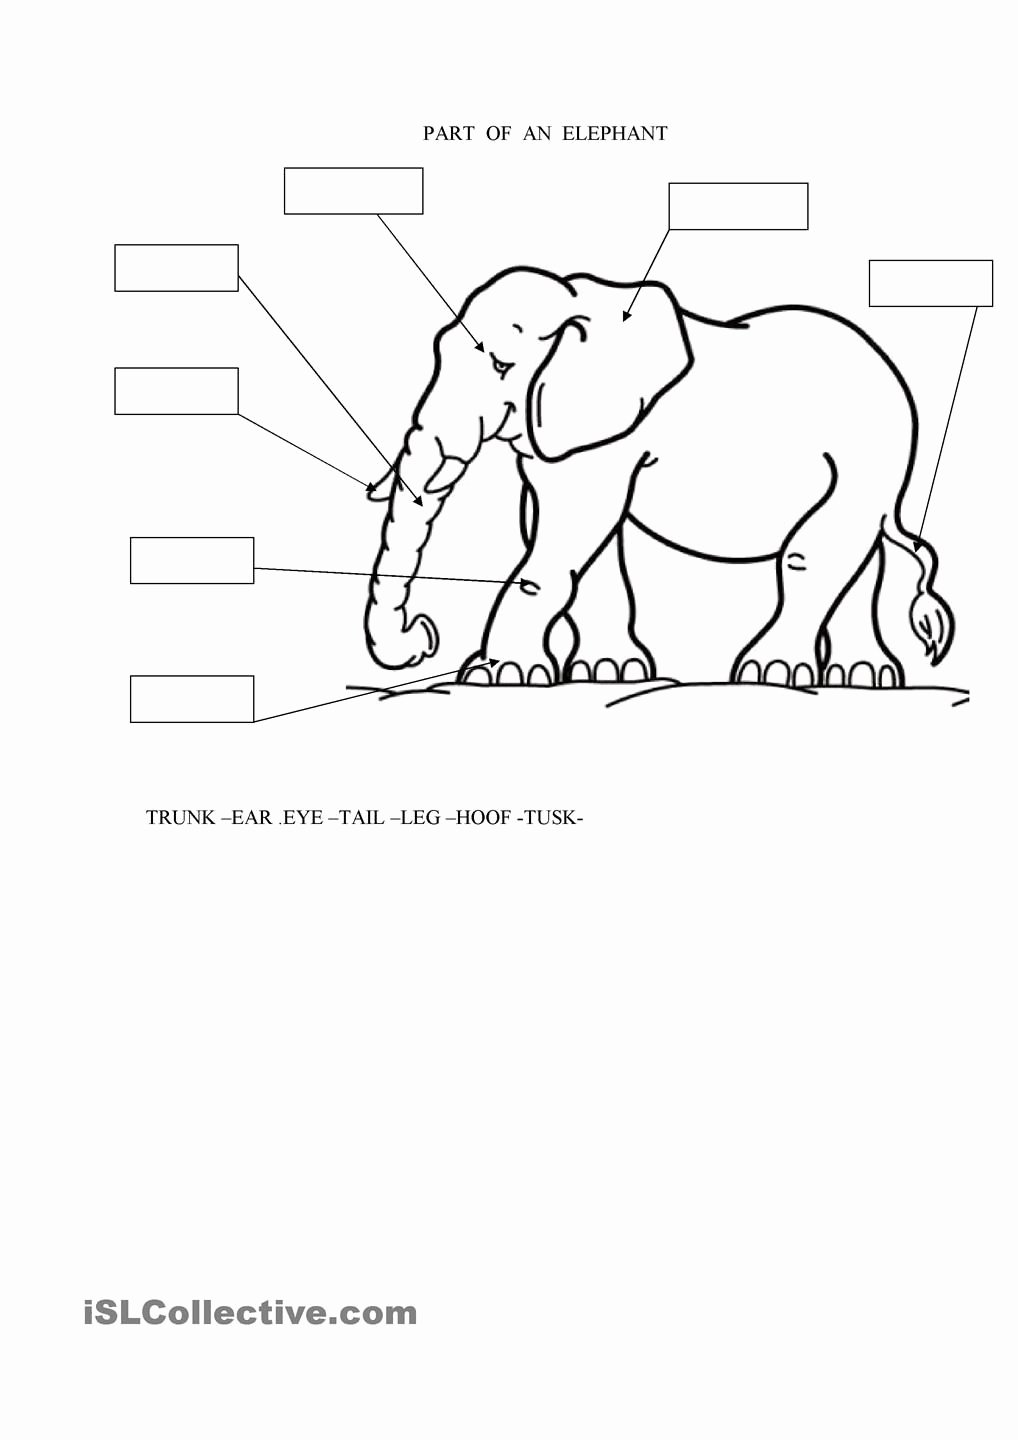 Elephant Worksheets for Preschoolers Unique Parts Of An Elephant